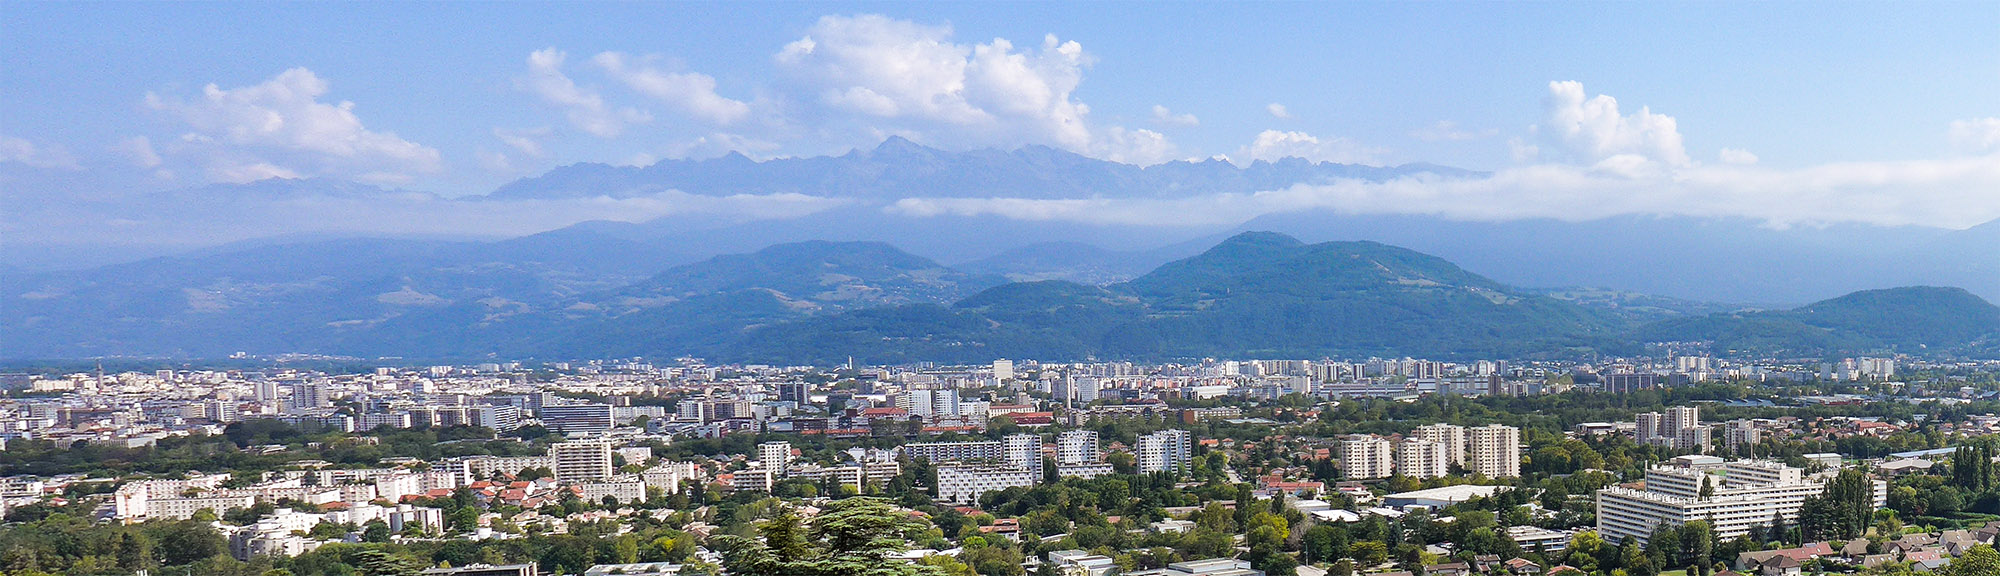 Panoramic view over Grenoble